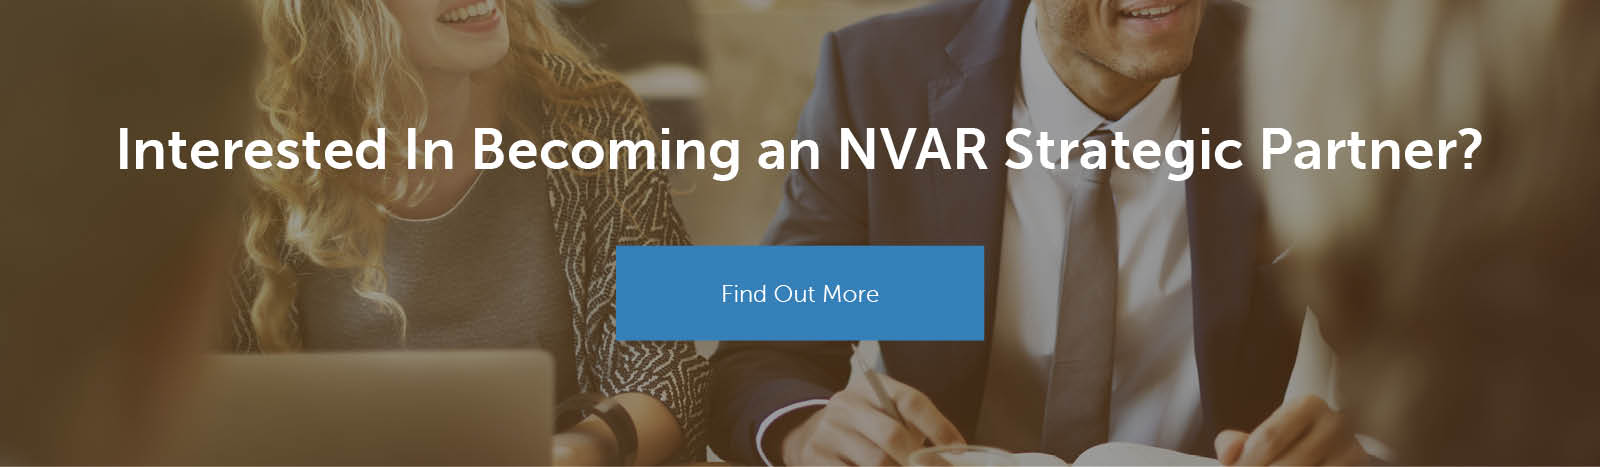 interested in becoming an nvar strategic partner? Click here for more info